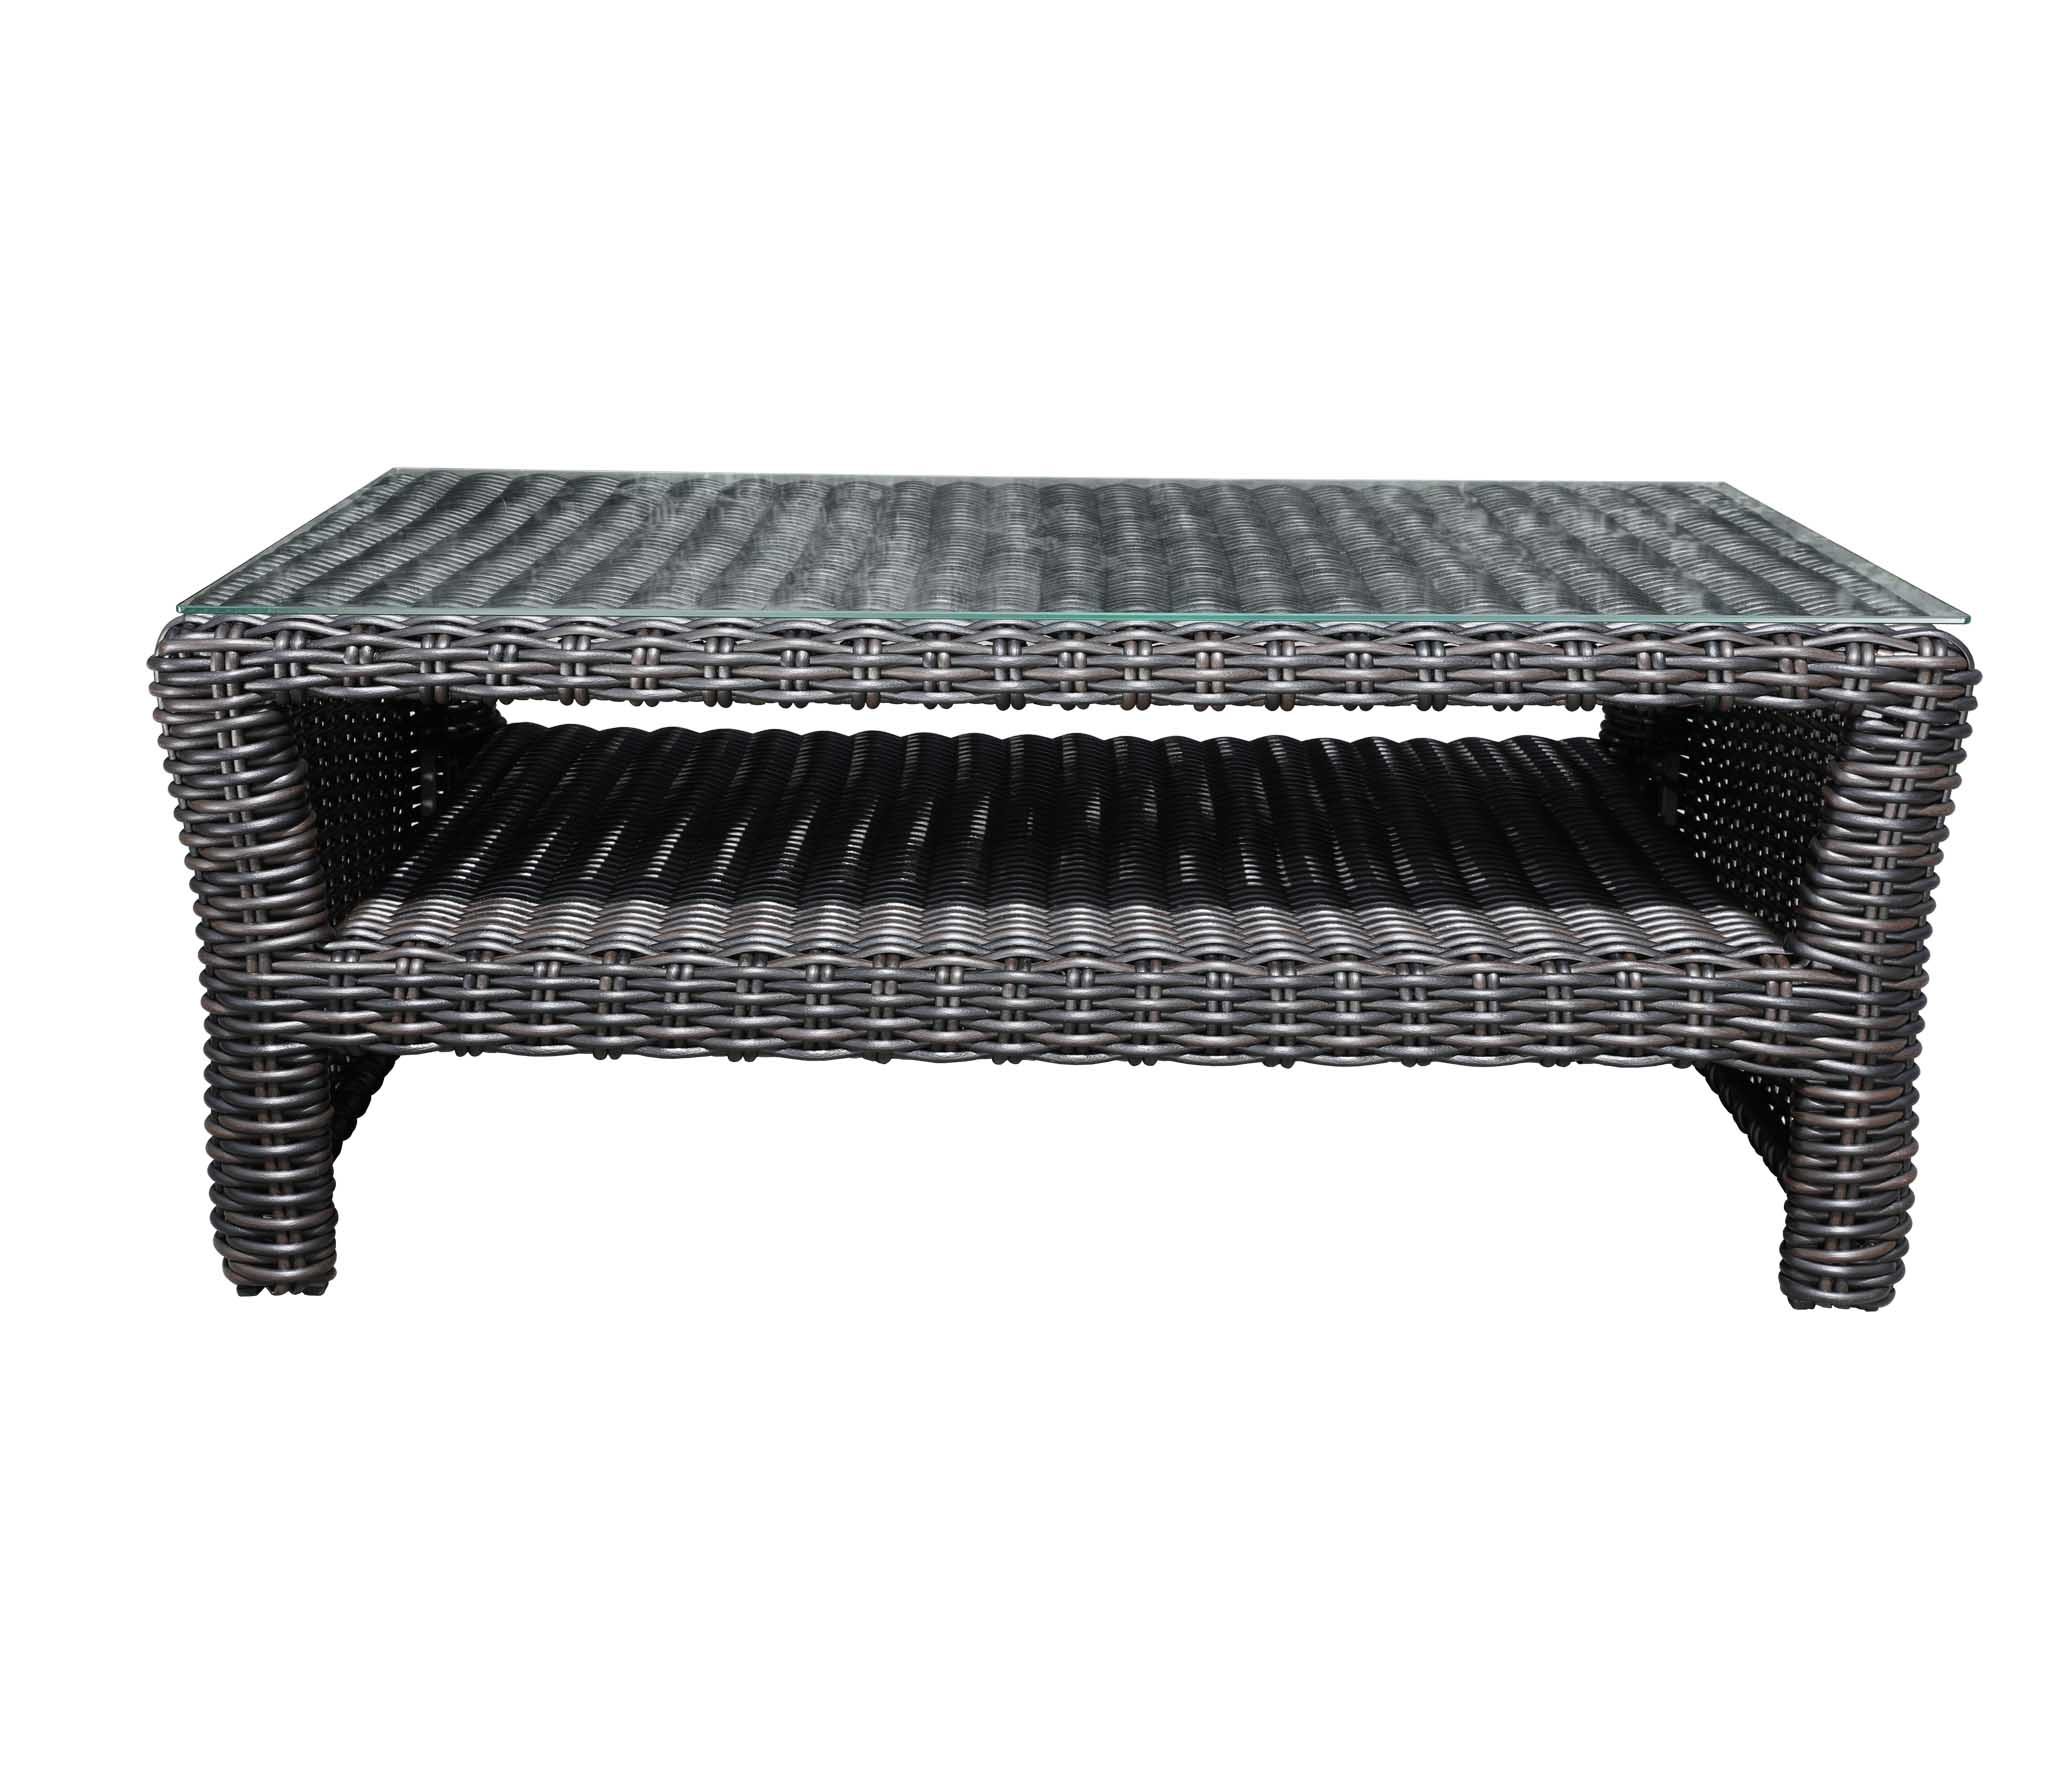 Oakville Outdoor Furniture Monterrey Coffee Table 9437 Patio Furniture Wicker